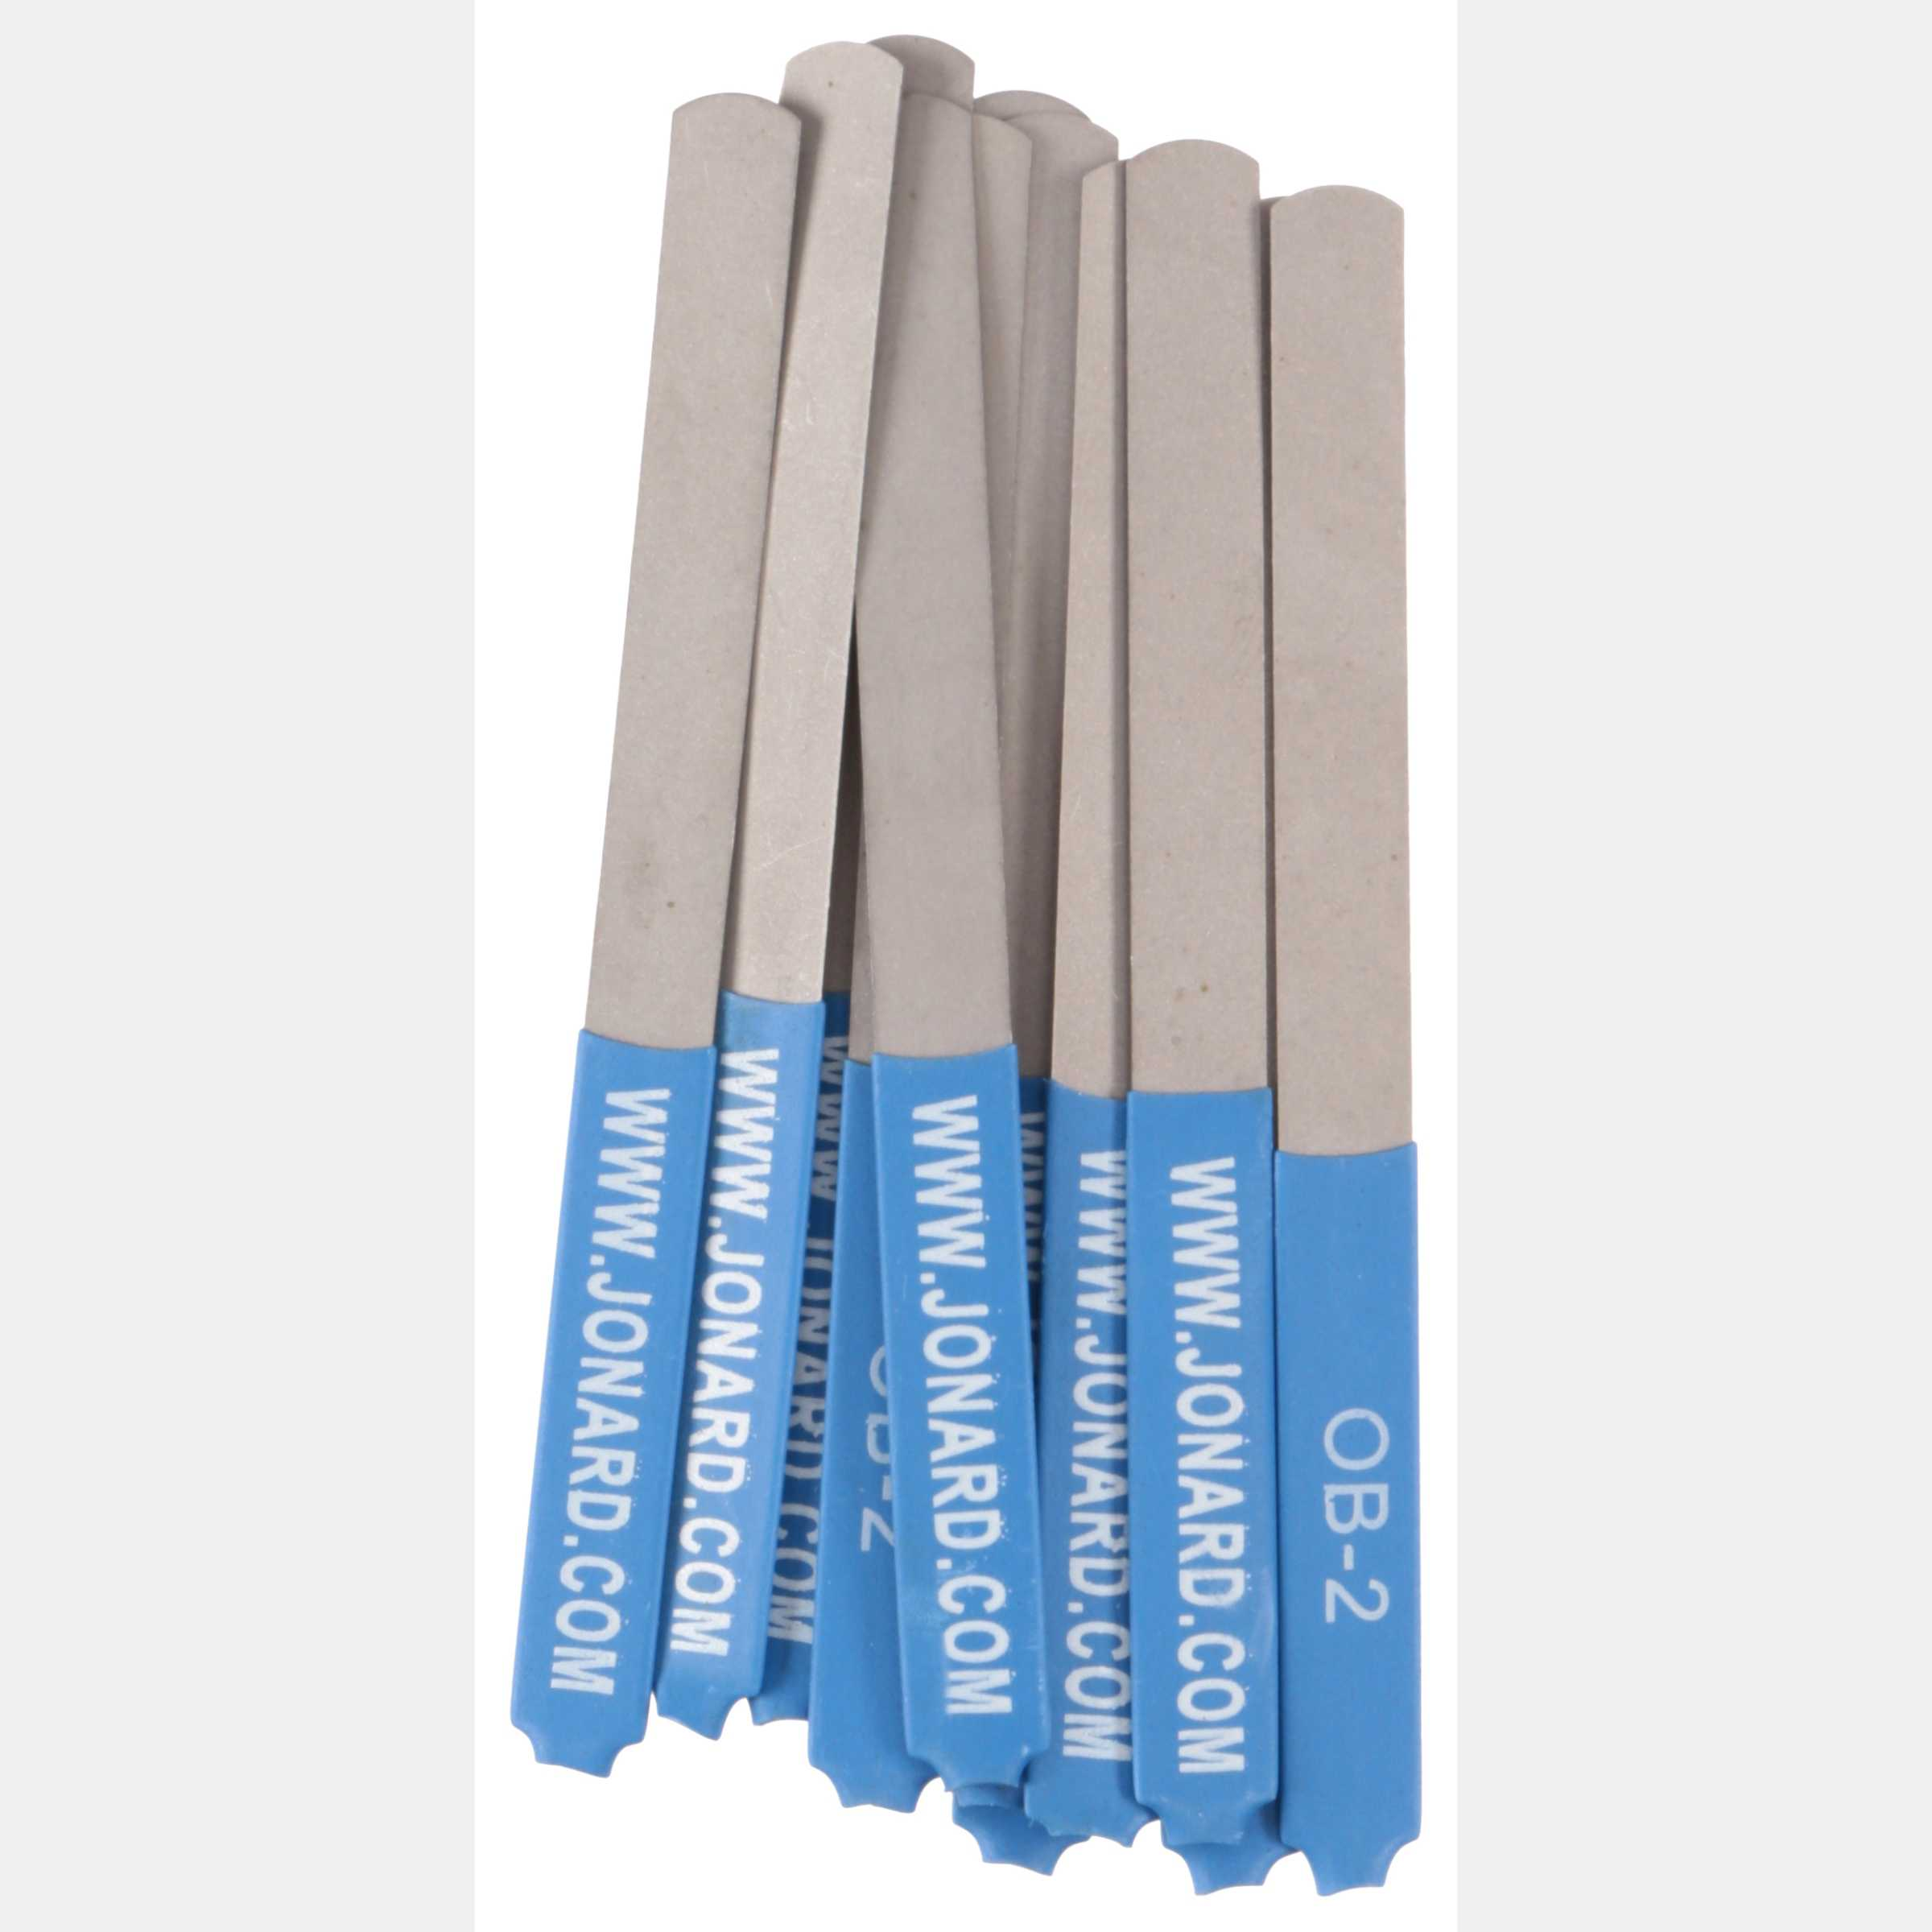 Jonard OB-2/12 0.007' Burnisher Files for Extra Sensitive Points, 12-Pack, Blue Insulated Handle